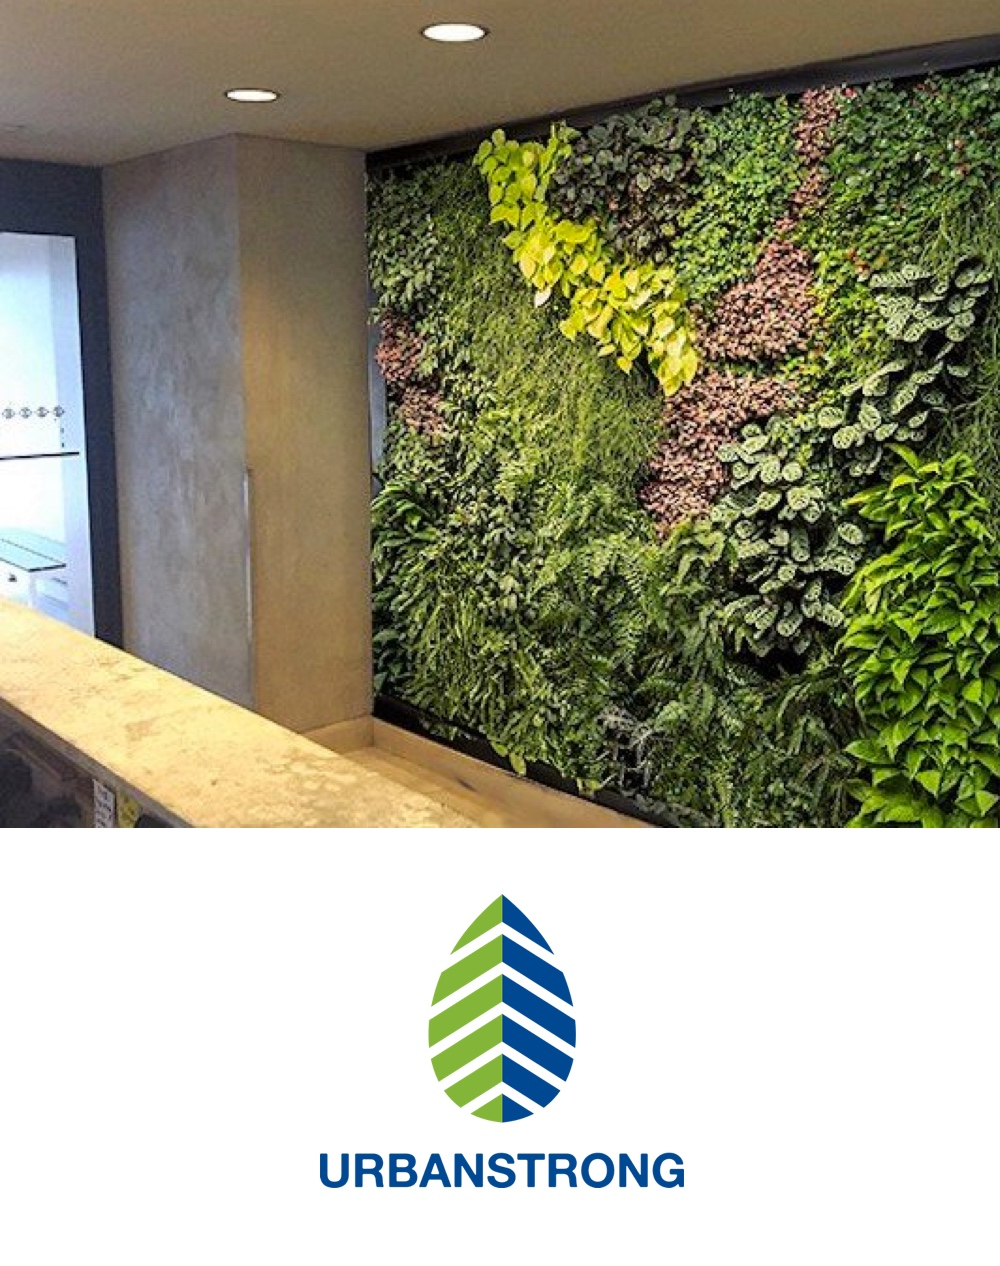 Green roofs, living walls, and green building technologies that boost property value, save energy, improve occupant health, and show commitment to the environment. -